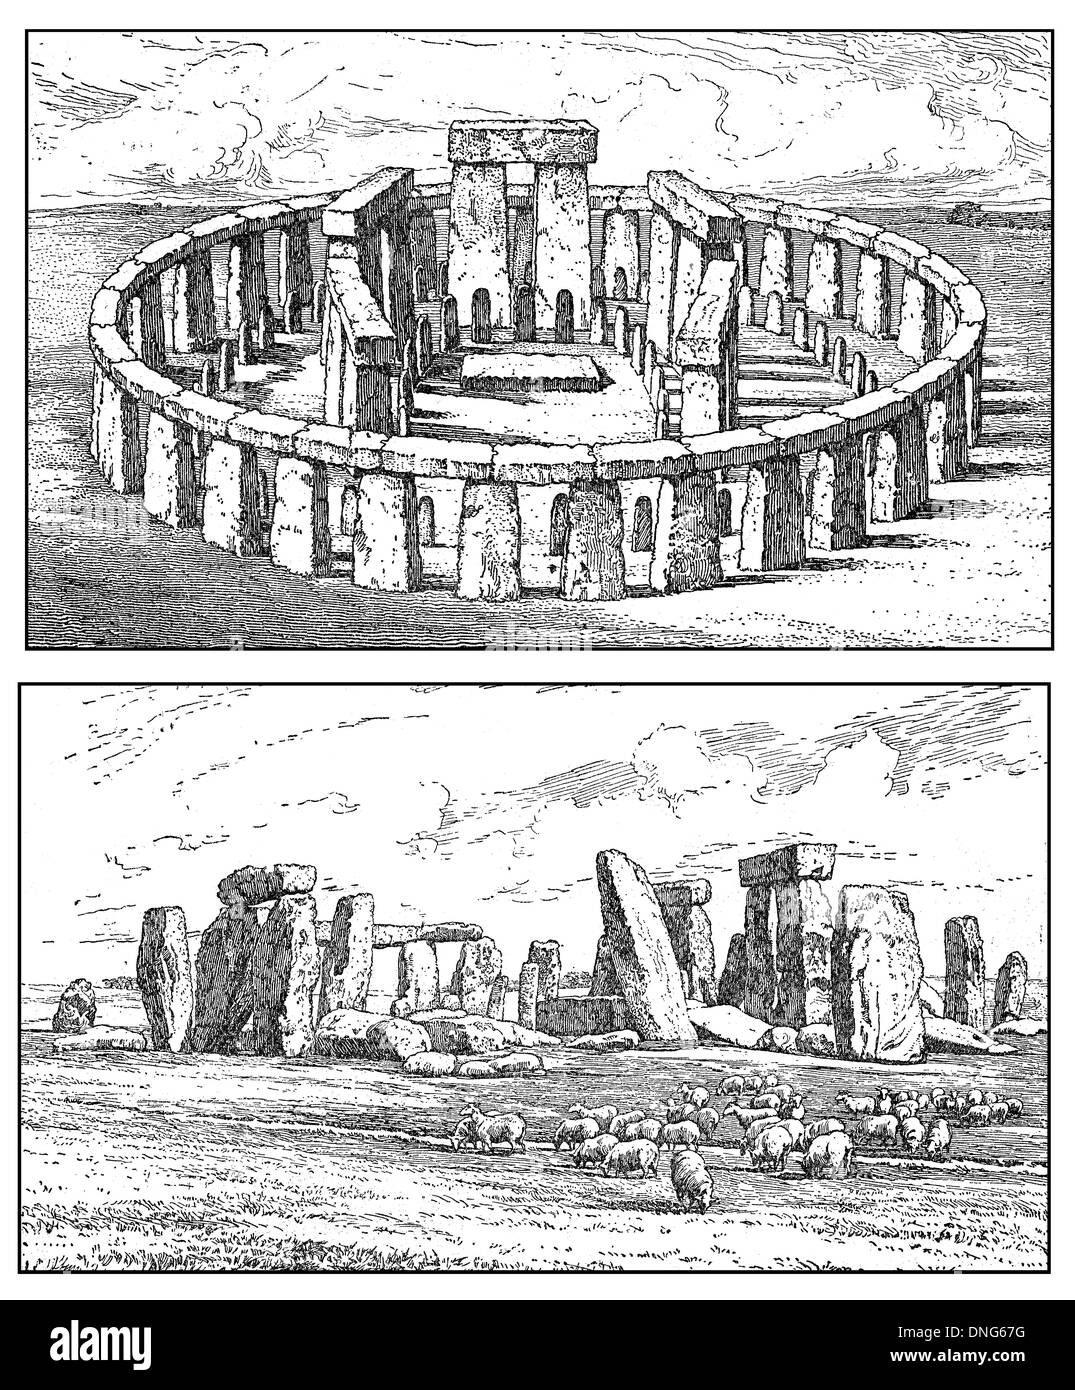 What are european stonehenges?